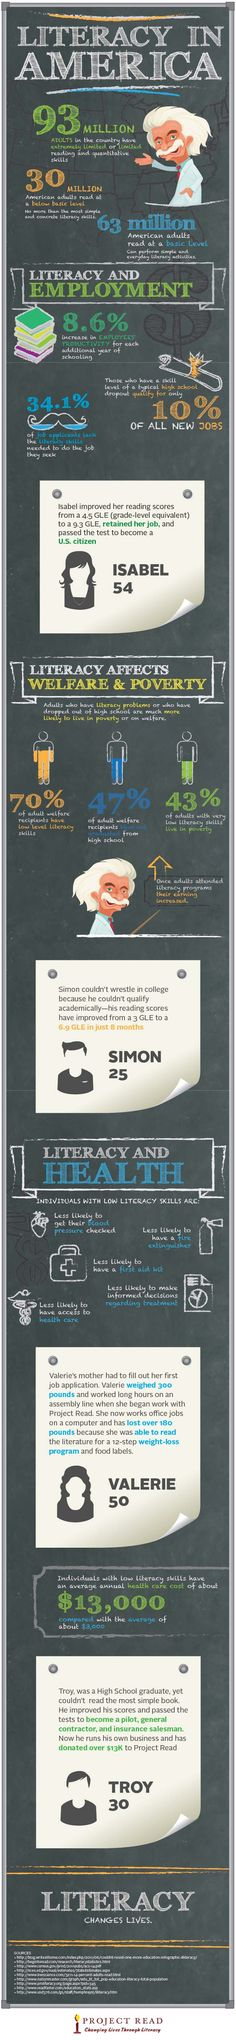 Literacy in America #infographic